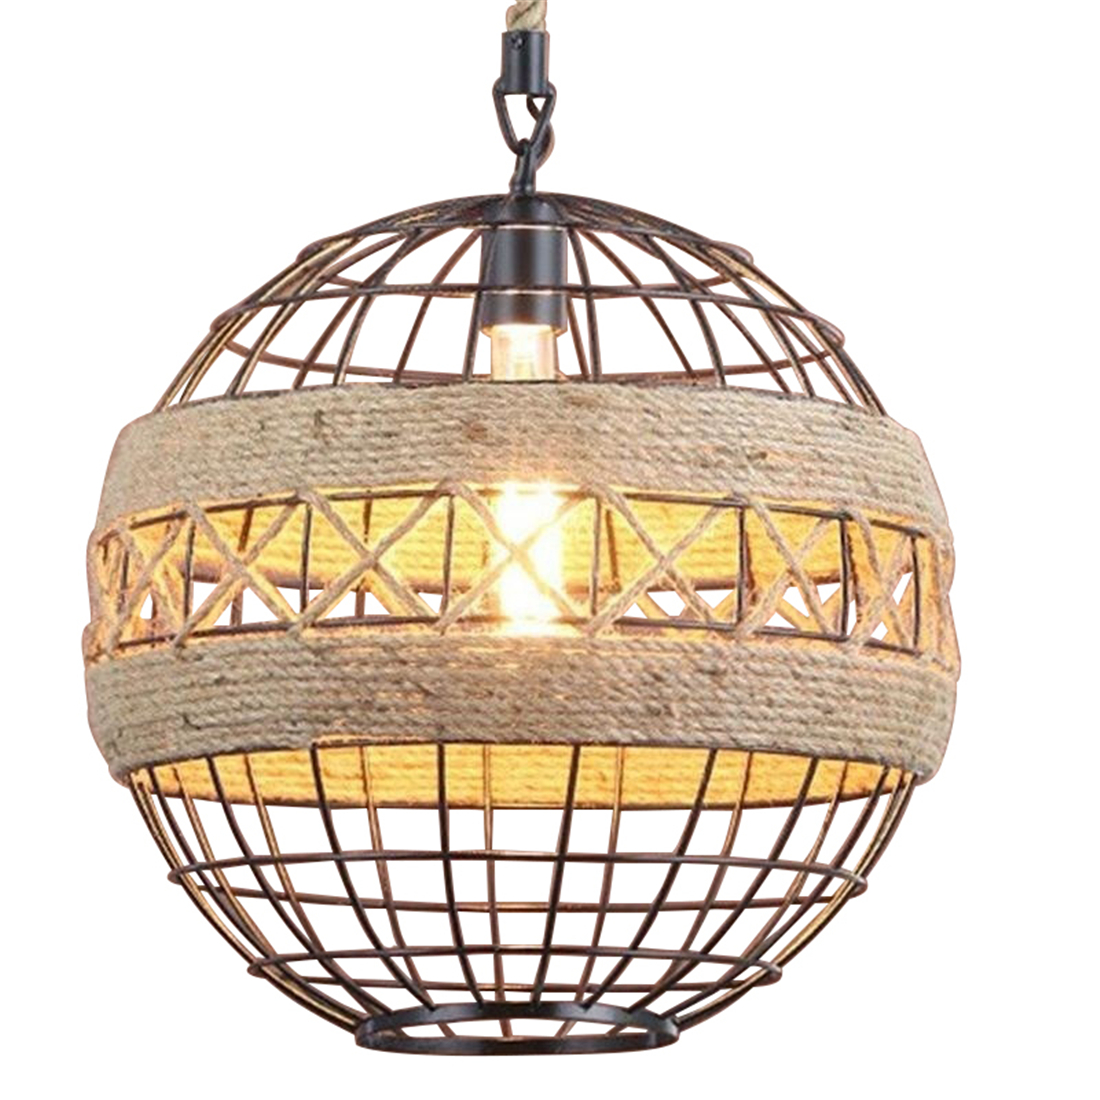 WISH-Country retro rope industrial wind chandelier Internet cafe restaurant cafe bar ball personalized lamps vintage industrial wind cafe internet cafe restaurant nordic individuality clothing shop window bar deck chandelier